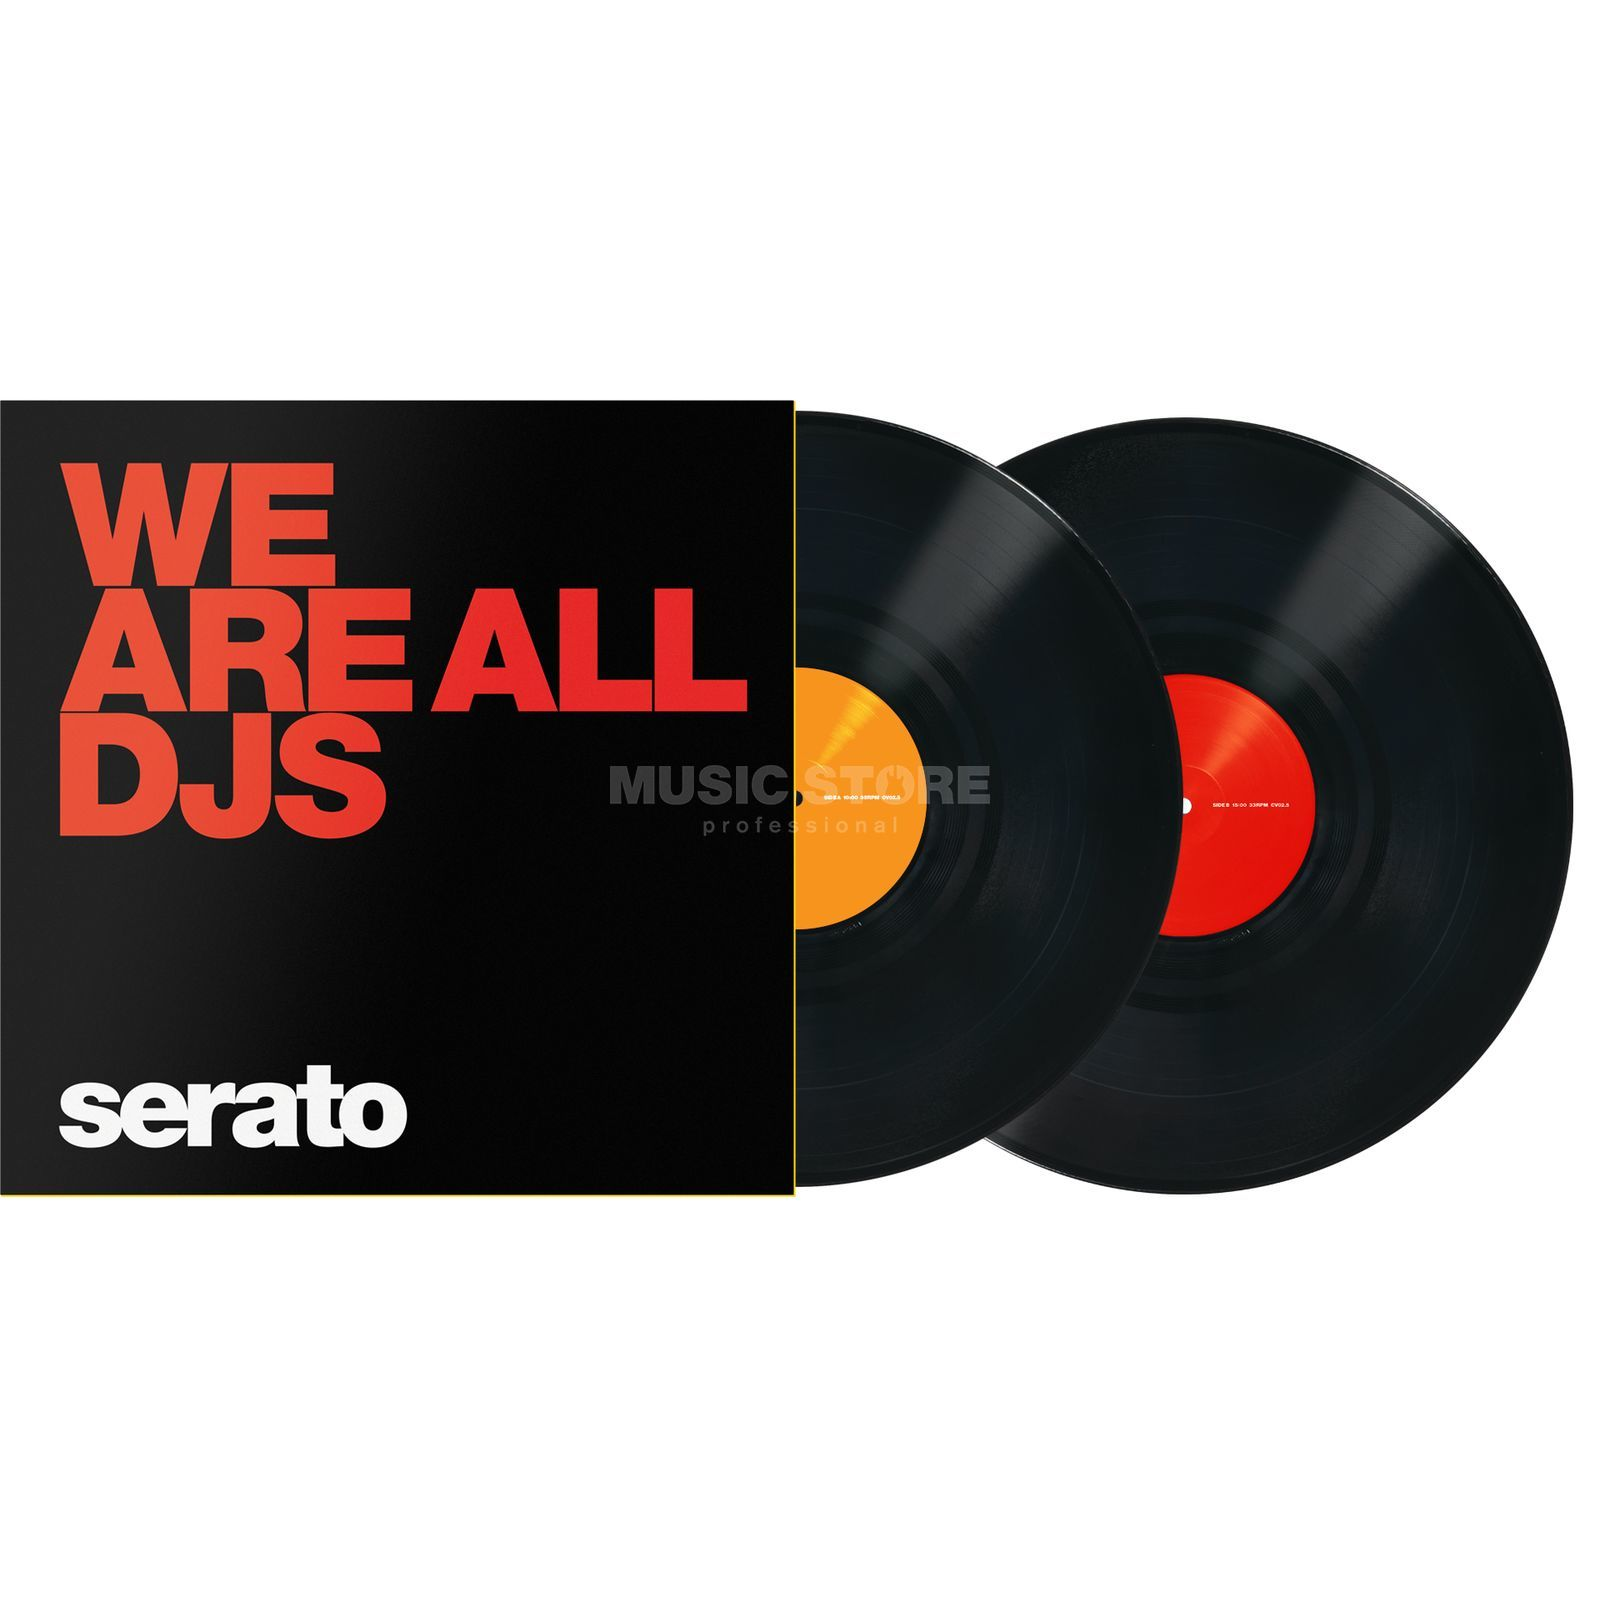 Serato Manifesto Control Vinyls Black, We are All DJs Zdjęcie produktu